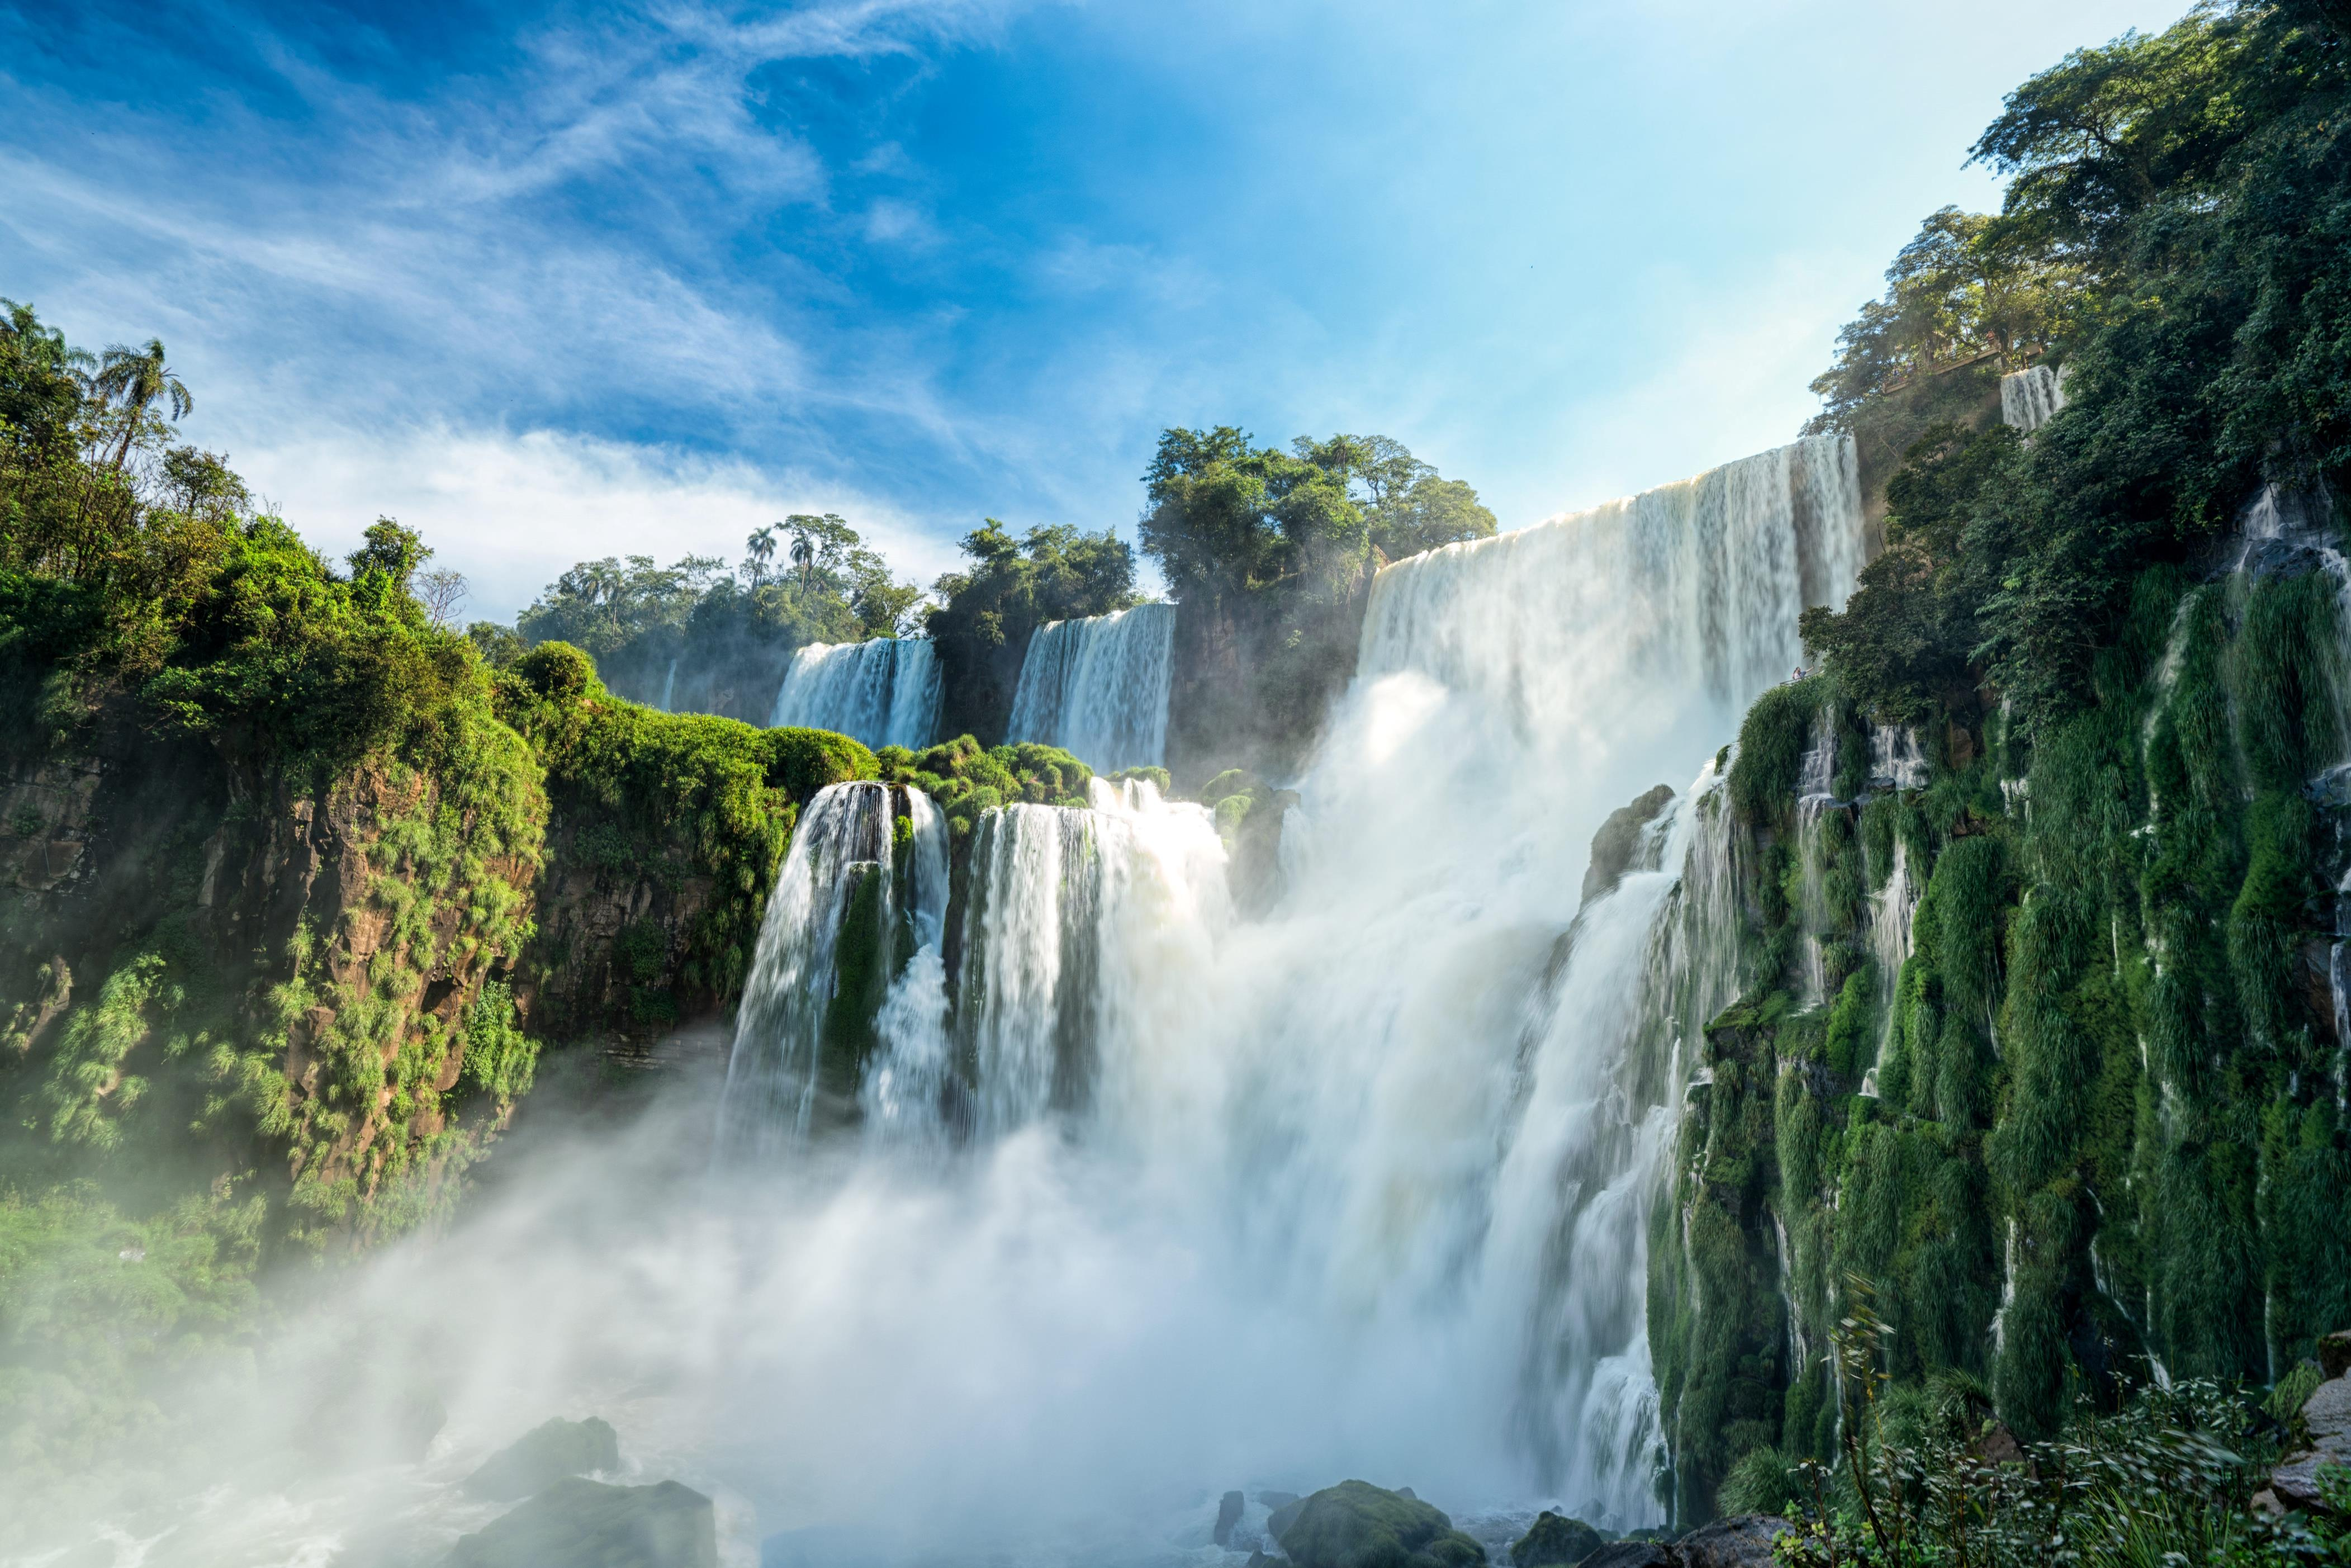 Slide 47 of 51: Spanning Argentina and Brazil, the Iguazu Falls are part of a massive waterfall system thattotals around 275 waterfalls.